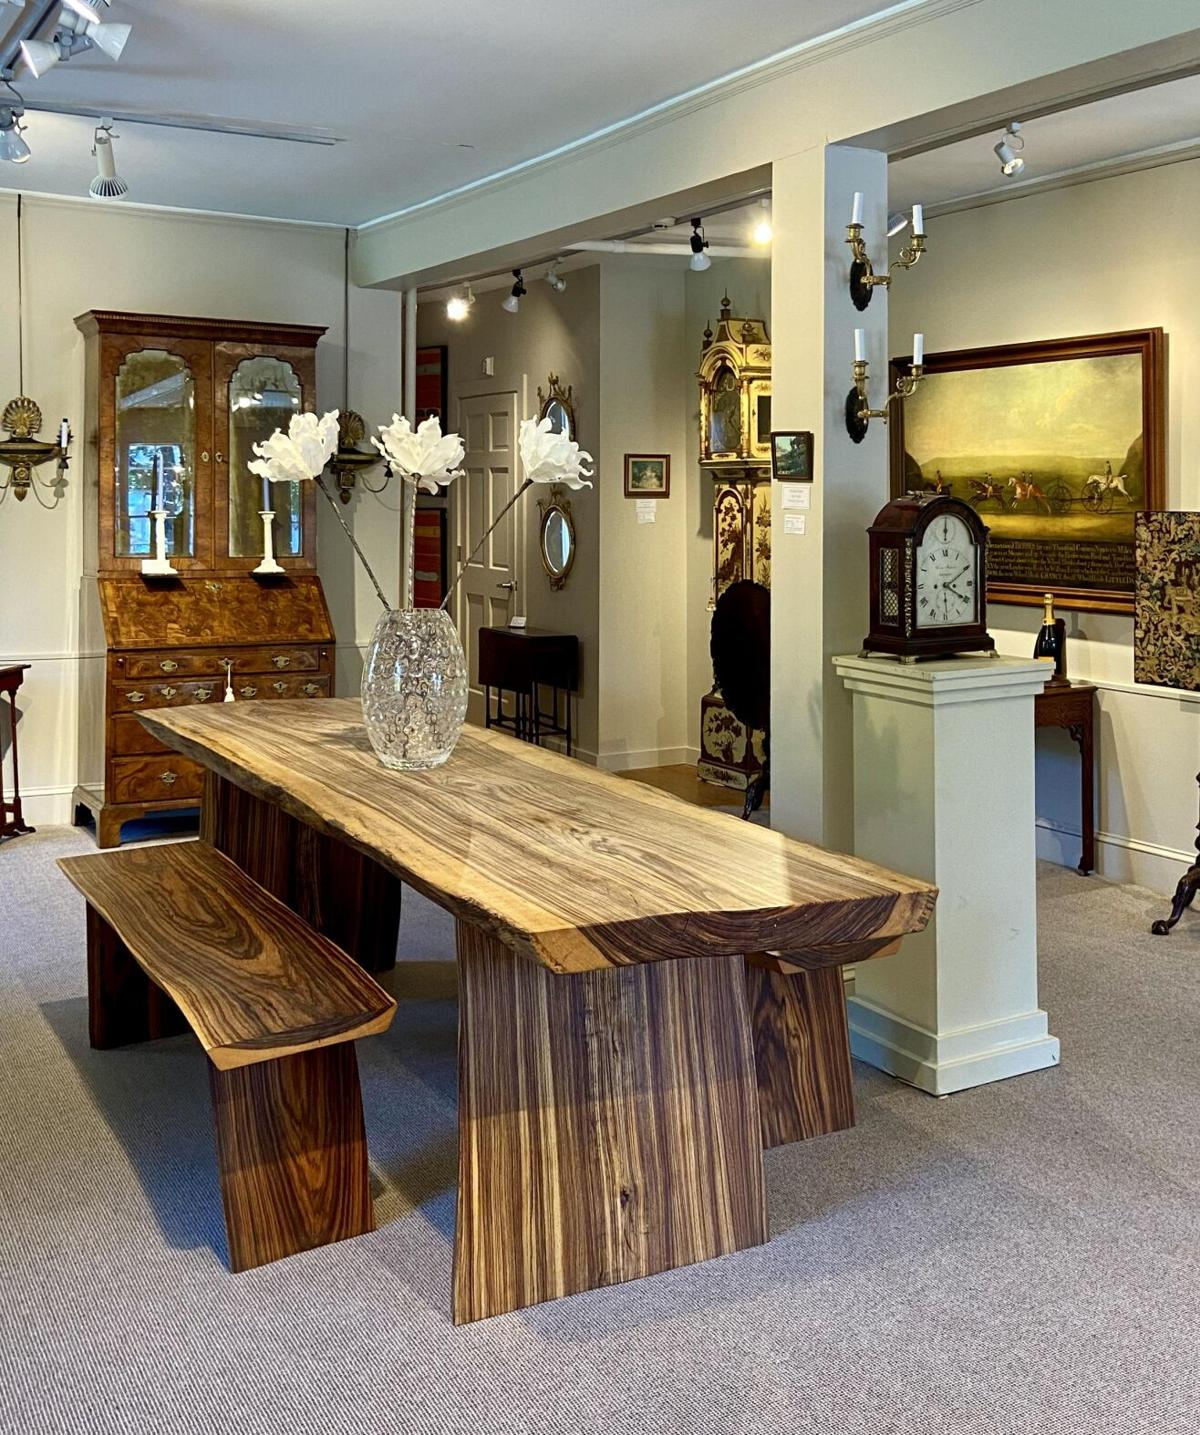 Antiques pro back in business in Woodbury